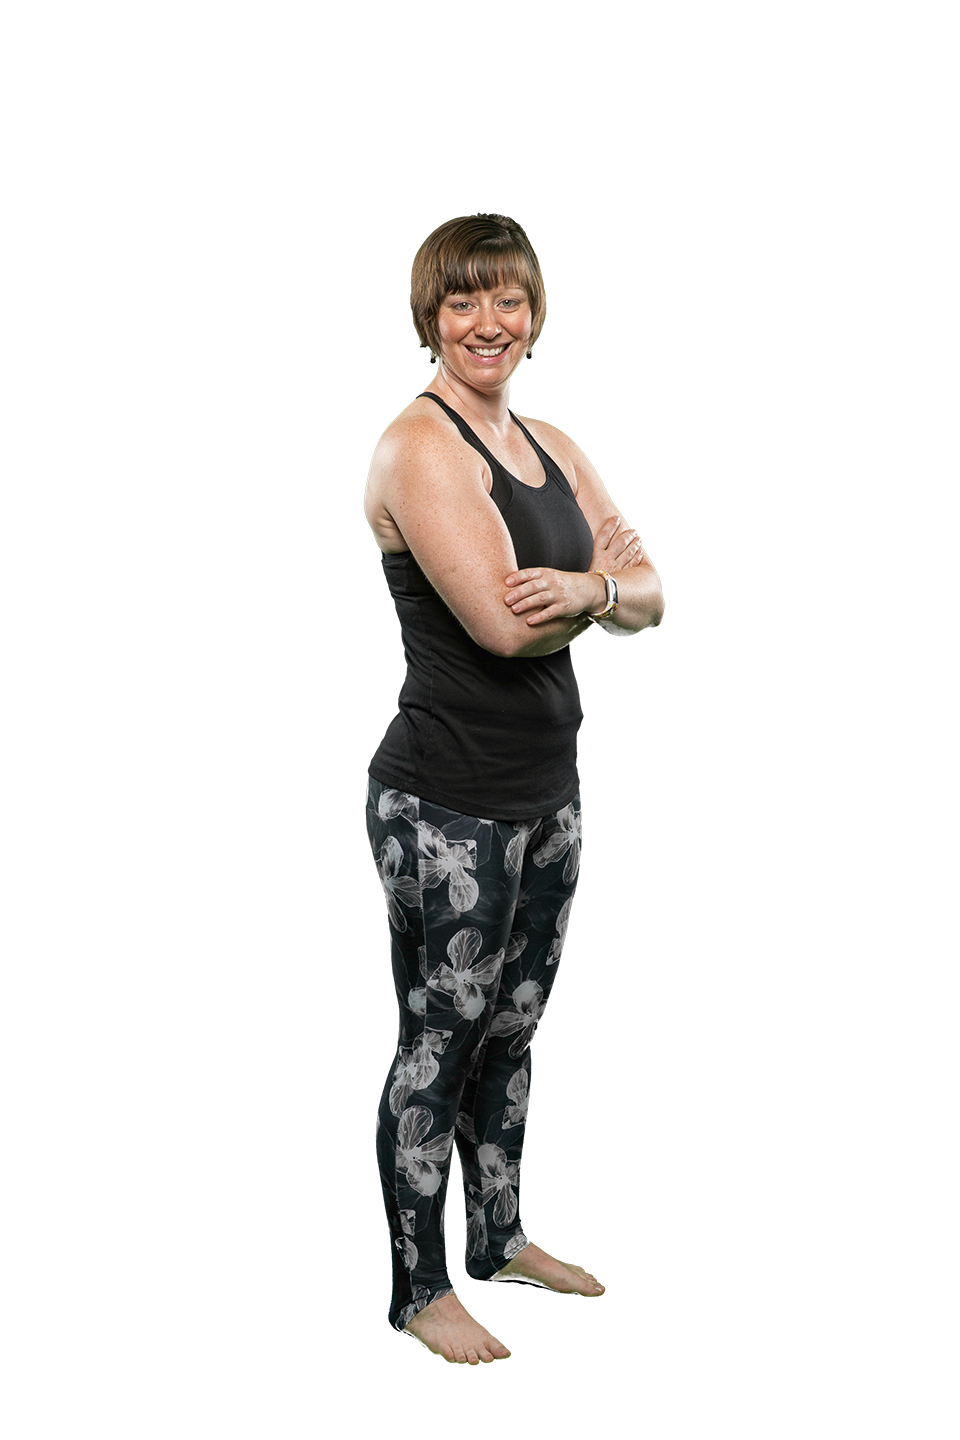 Amy - BodyFlow, BodyPump,and RPM InstructorAmy works as a Full-time Accountant, and is always friendly. She is a self professed Travel and Outdoor Adventure Adrenaline Enthusiast. If she's not at the gym, she's usually on a plane, a mountain, or by a lake!Favorite Quote: It's better to look back on life and say: